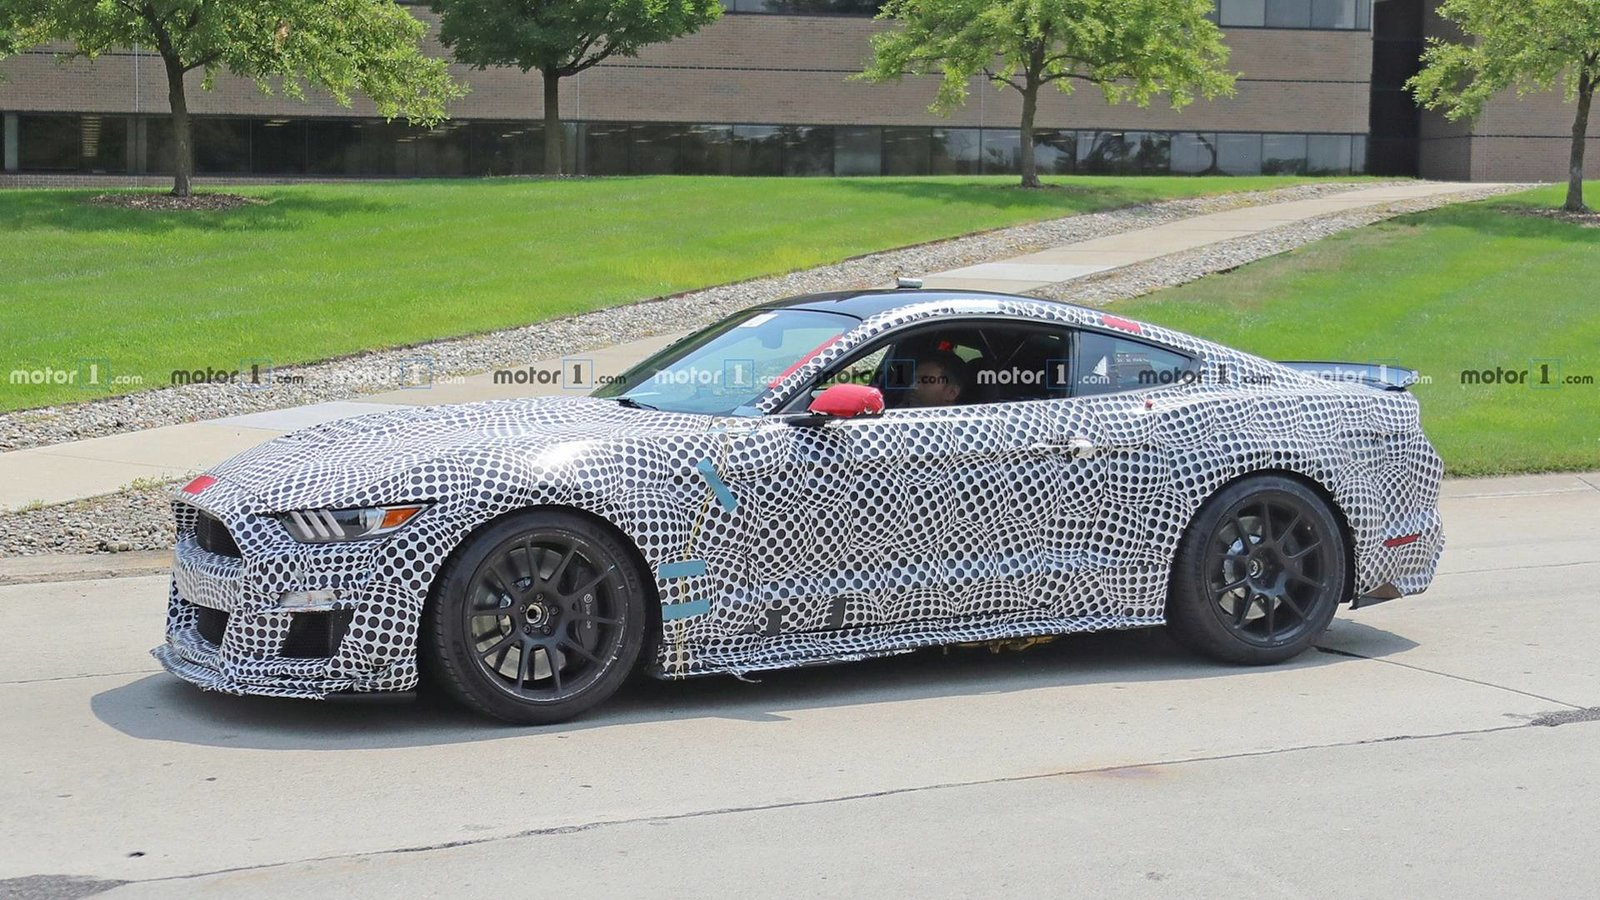 2019-ford-mustang-shelby-gt500-spy-photo (1).jpg